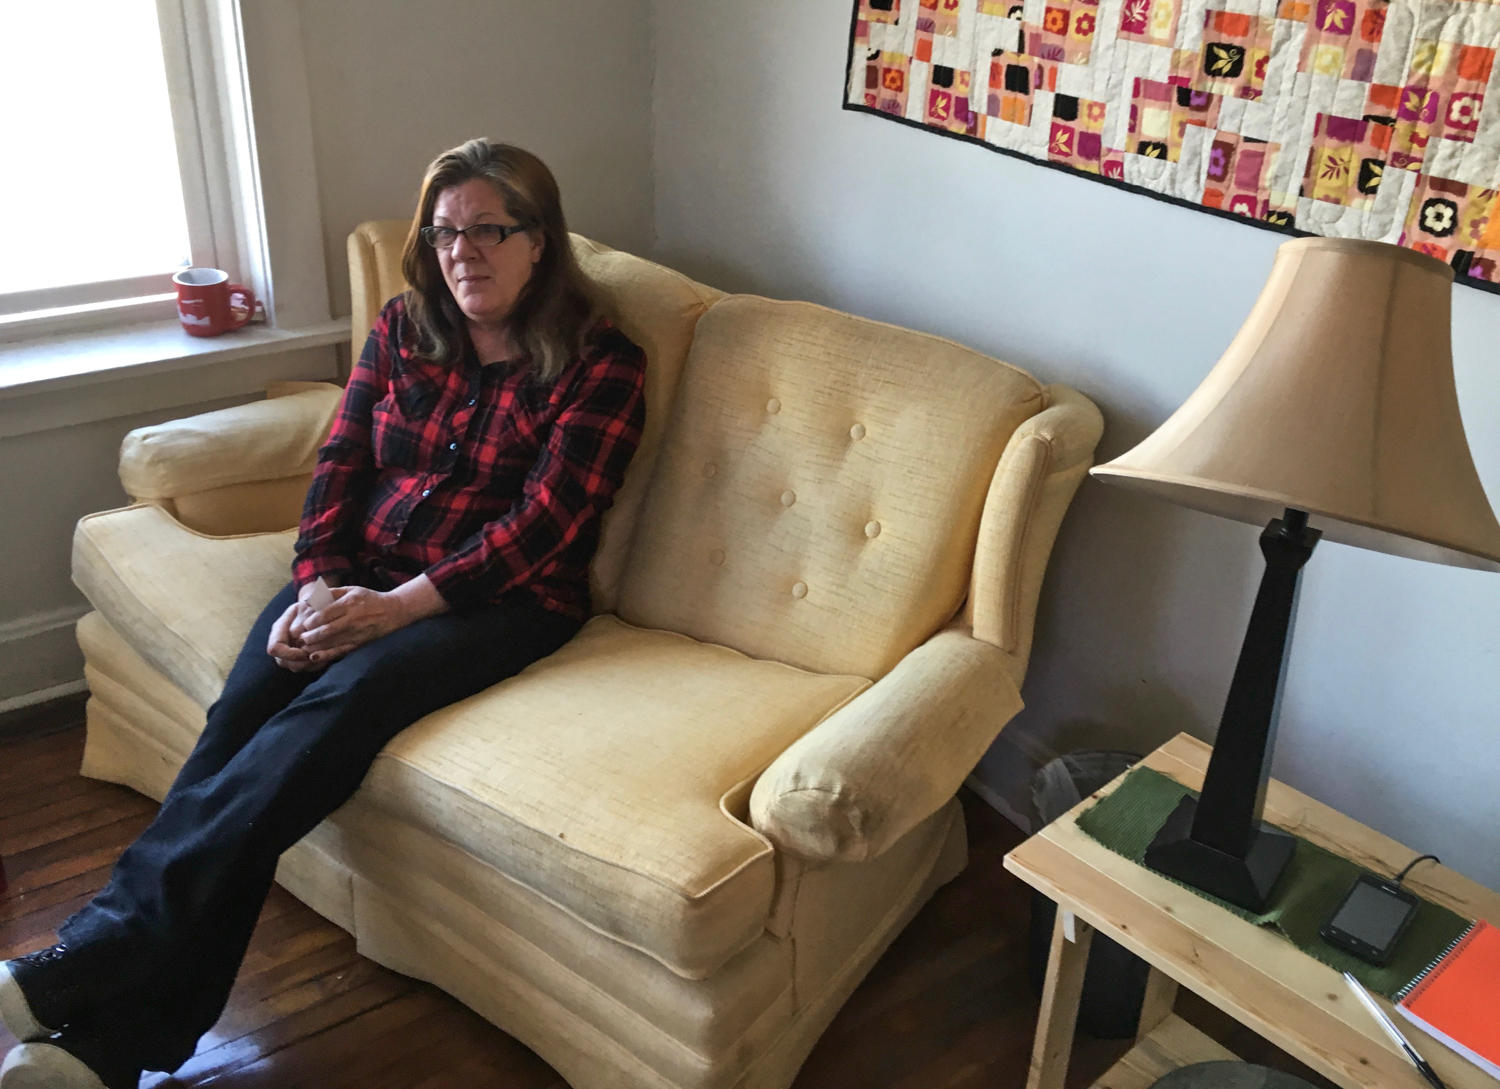 Ann Garcia 54 Poses On A Couch She Got From The Home Sweet Furniture Bank